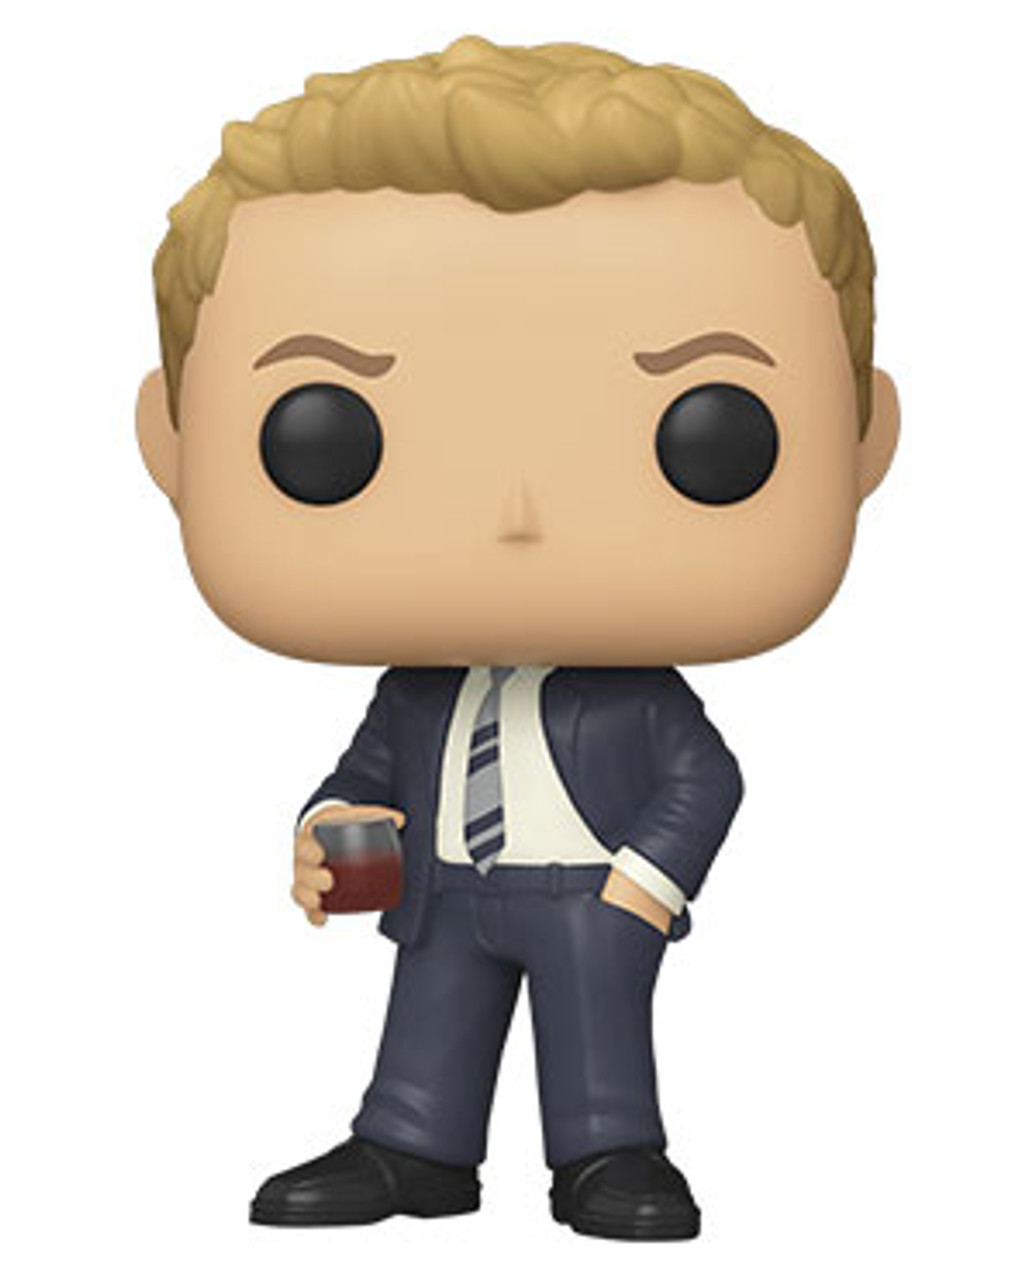 POP! Television ~ How I Met Your Mother ~ Barney in Suit